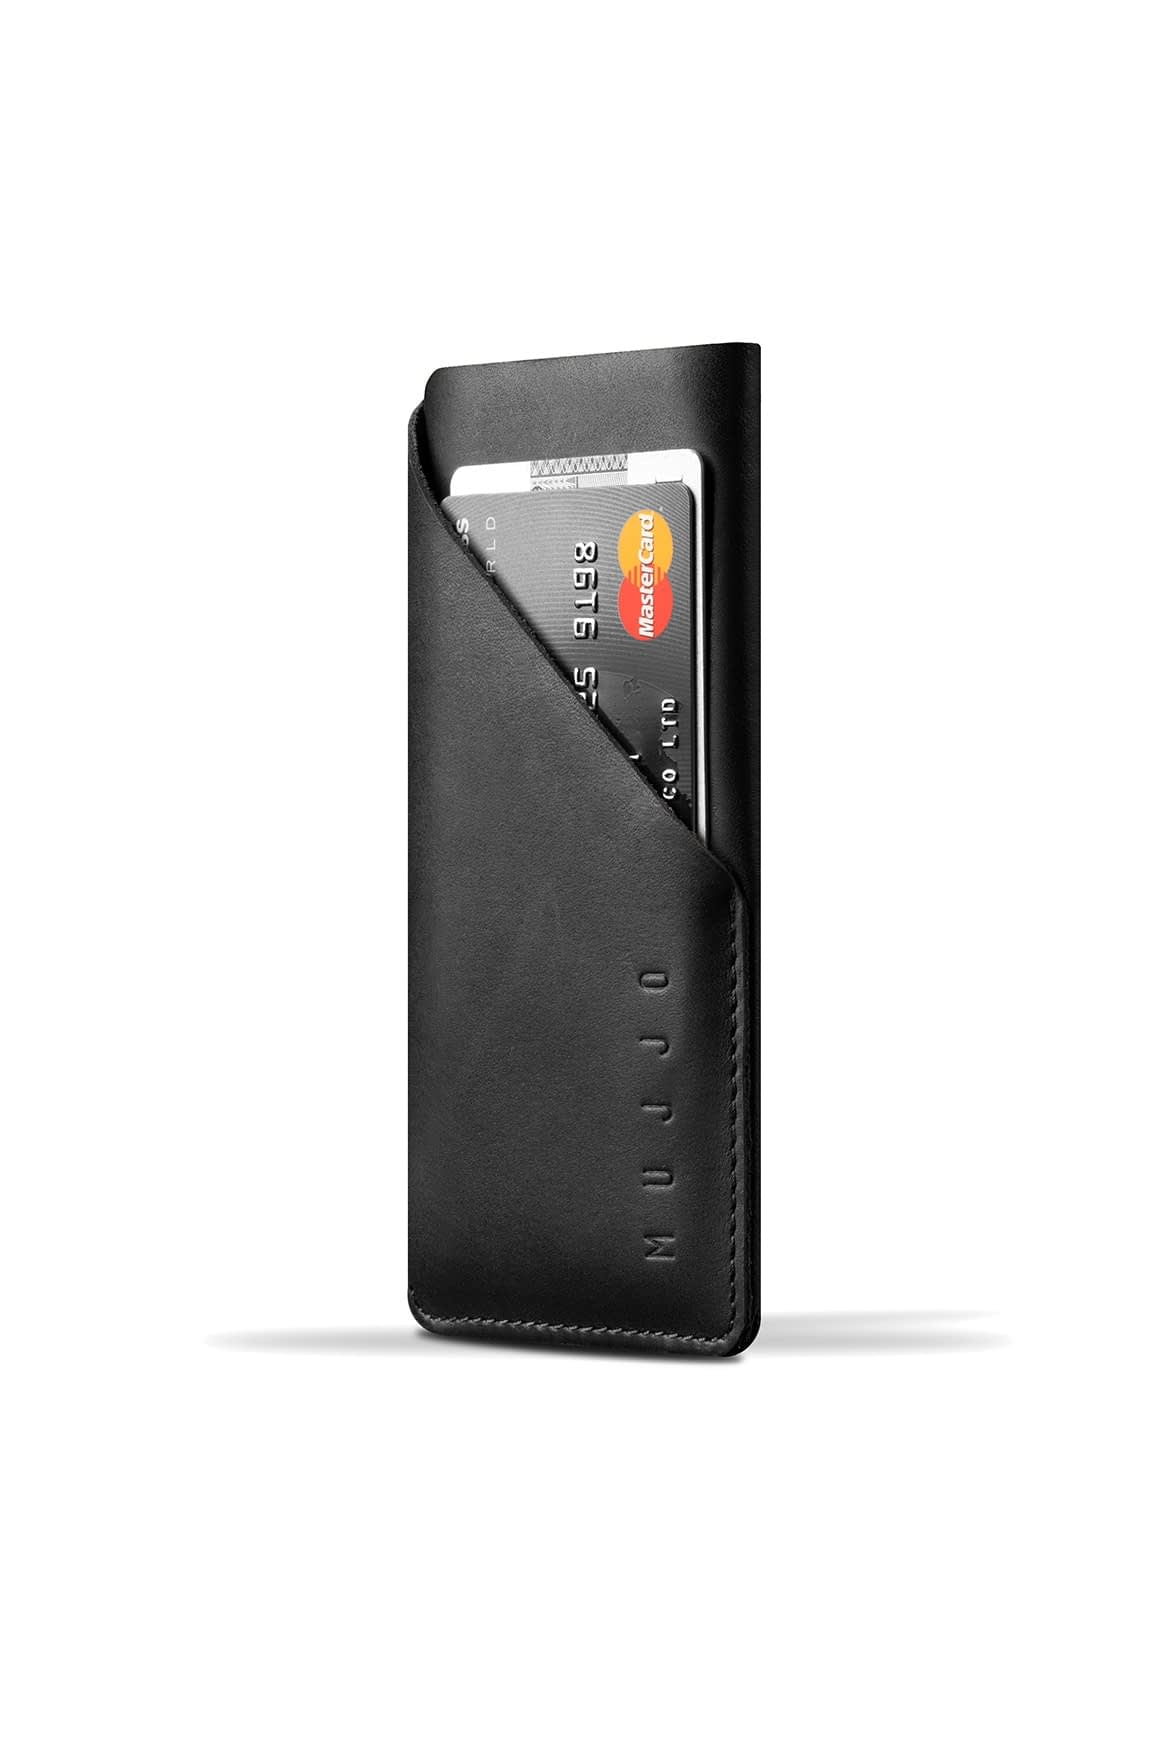 Leather Wallet Sleeve for iPhone 7 Black 001